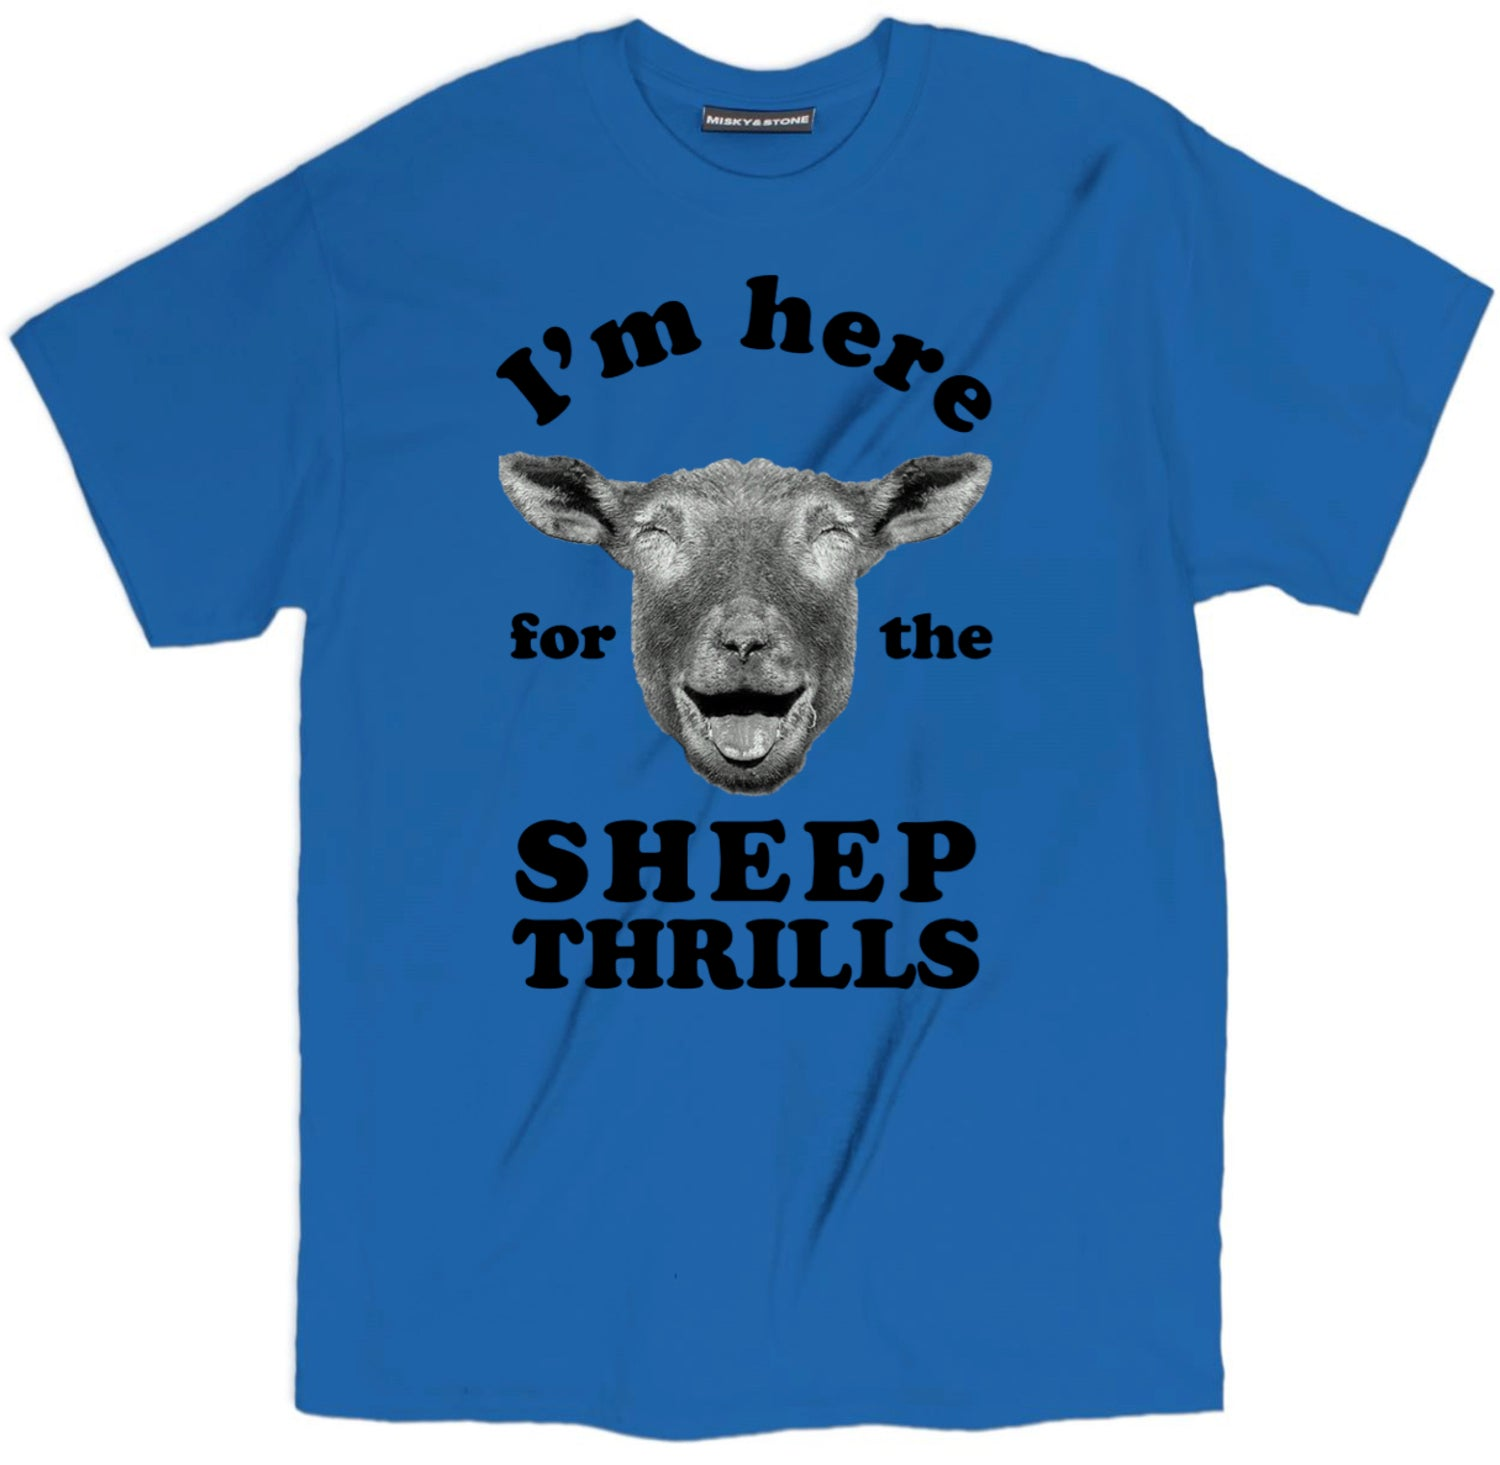 Funny Sheep Thrills T Shirt